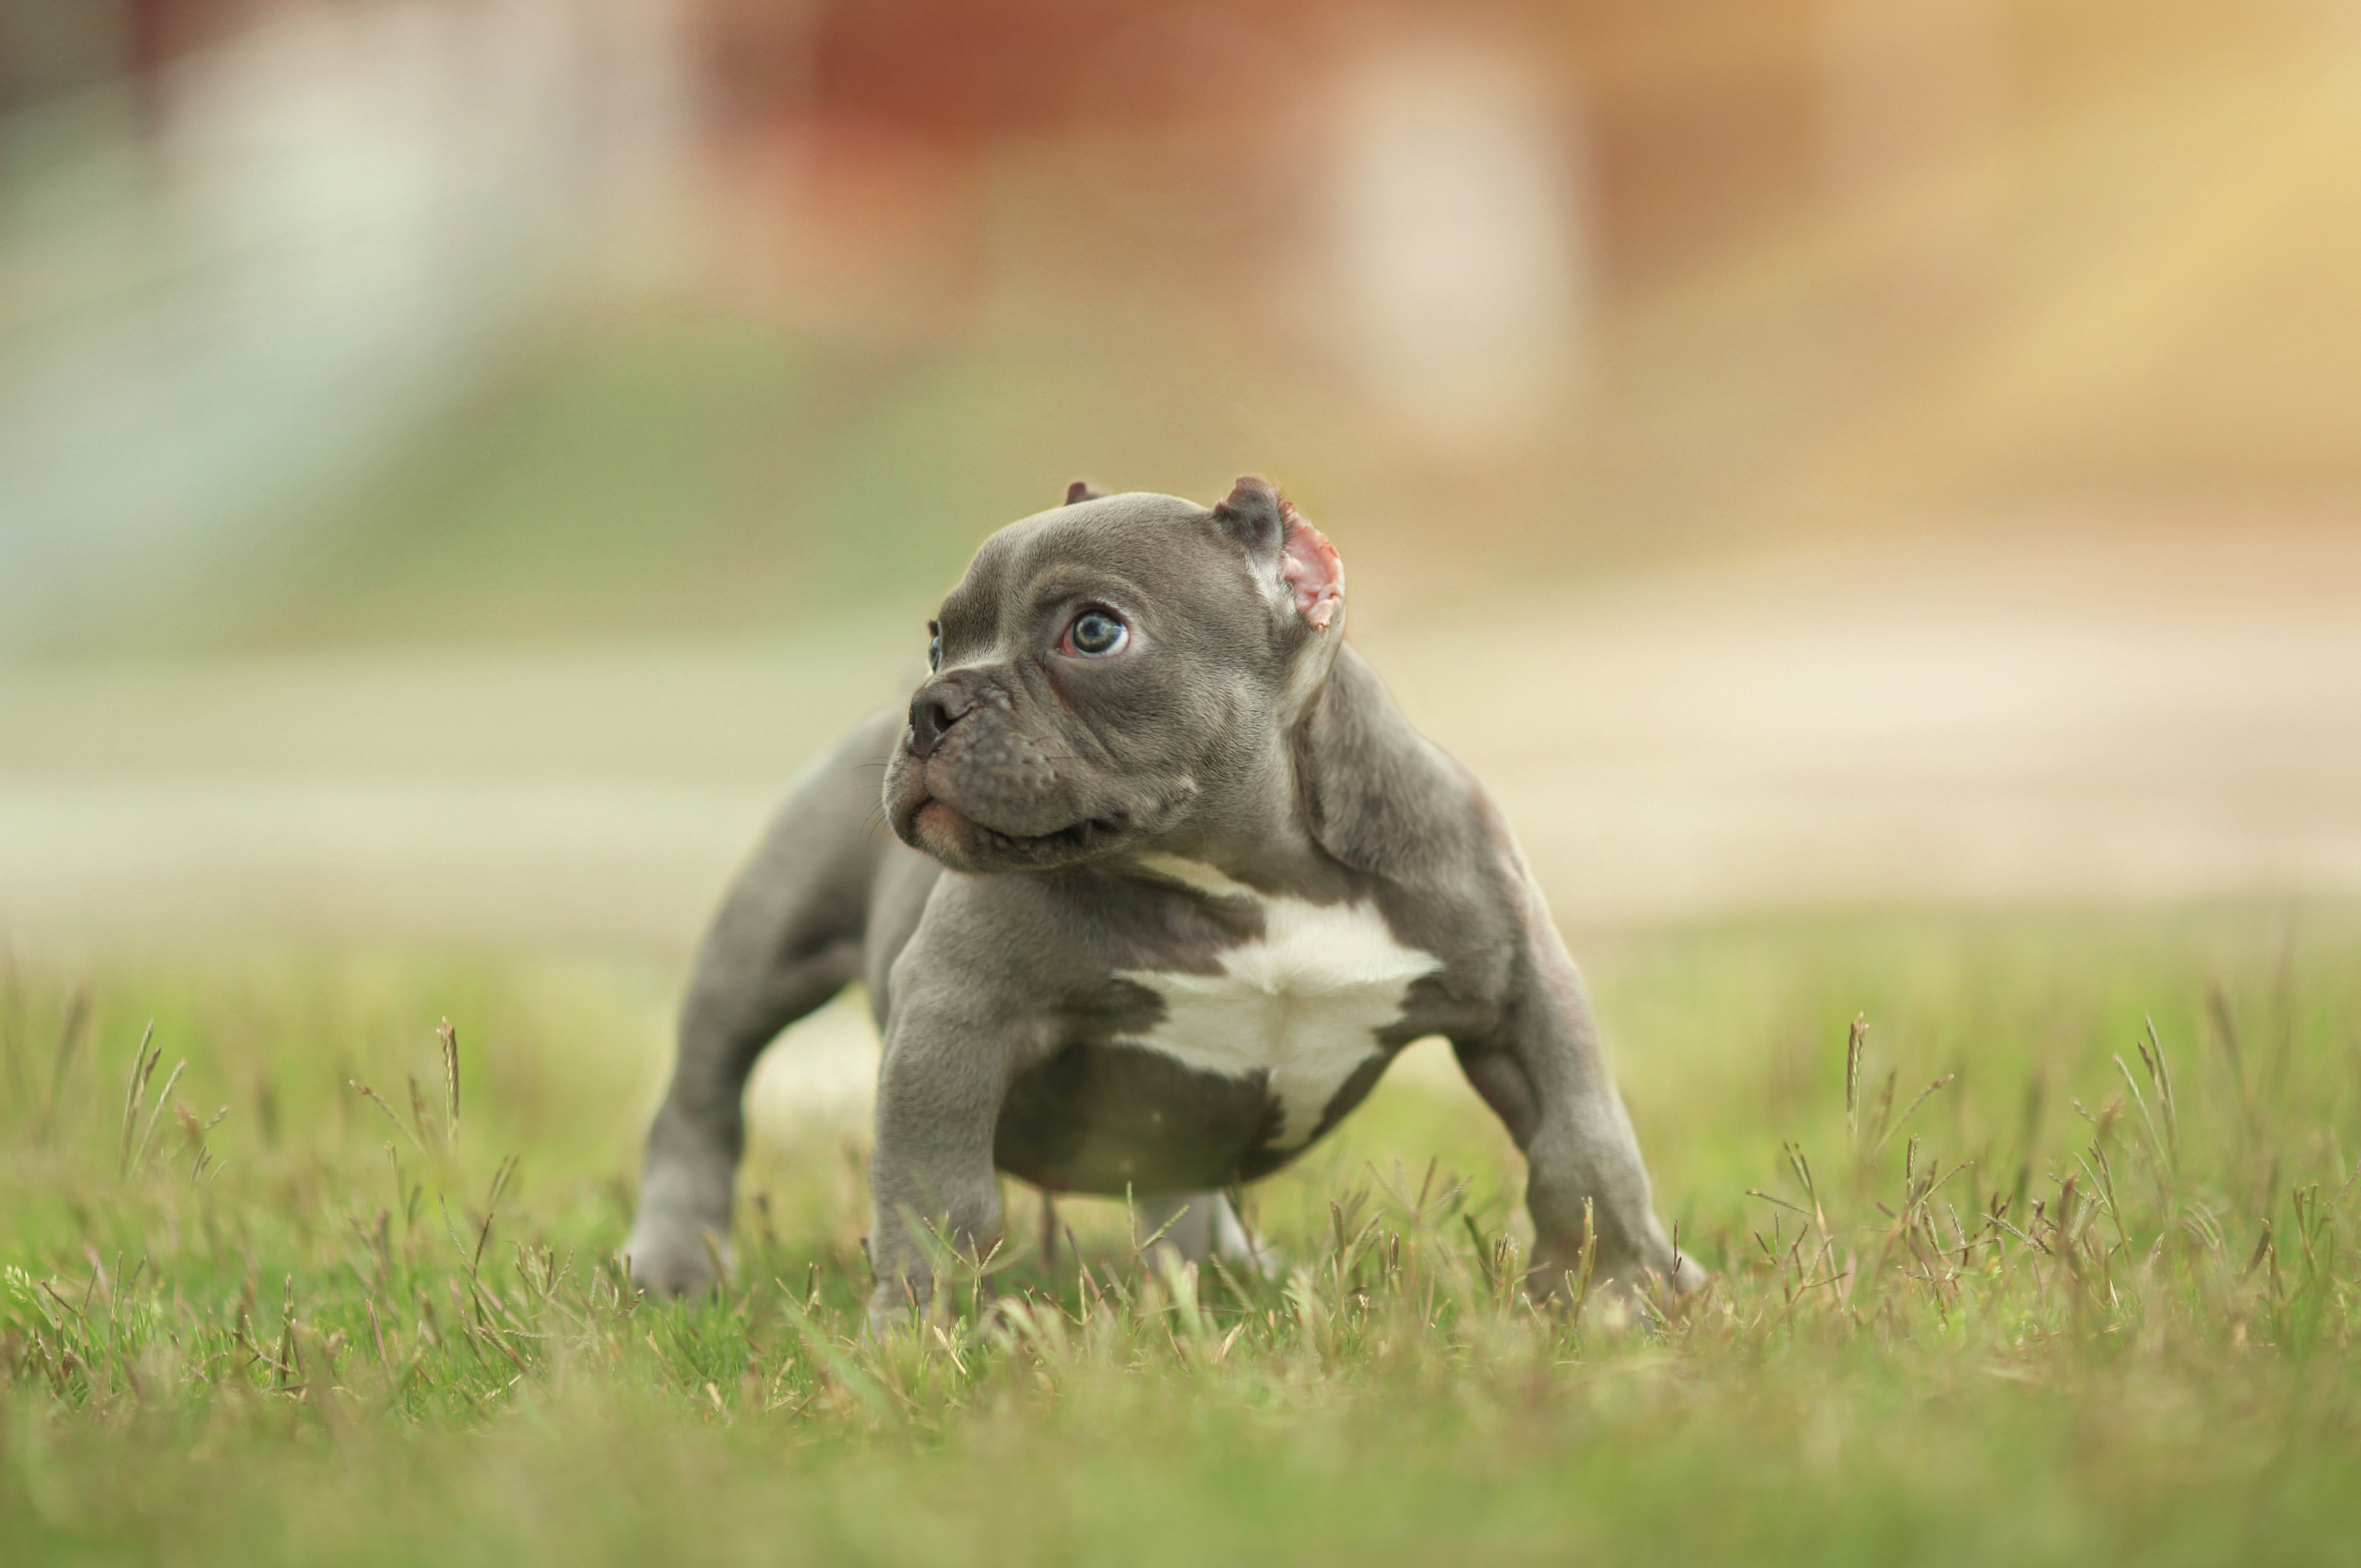 Free Download Download Wallpapers American Bully 4k Puppy Pets Canis Lupus 3840x2400 For Your Desktop Mobile Tablet Explore 19 American Bully Wallpapers American Bully Wallpapers American Beauty American Psycho